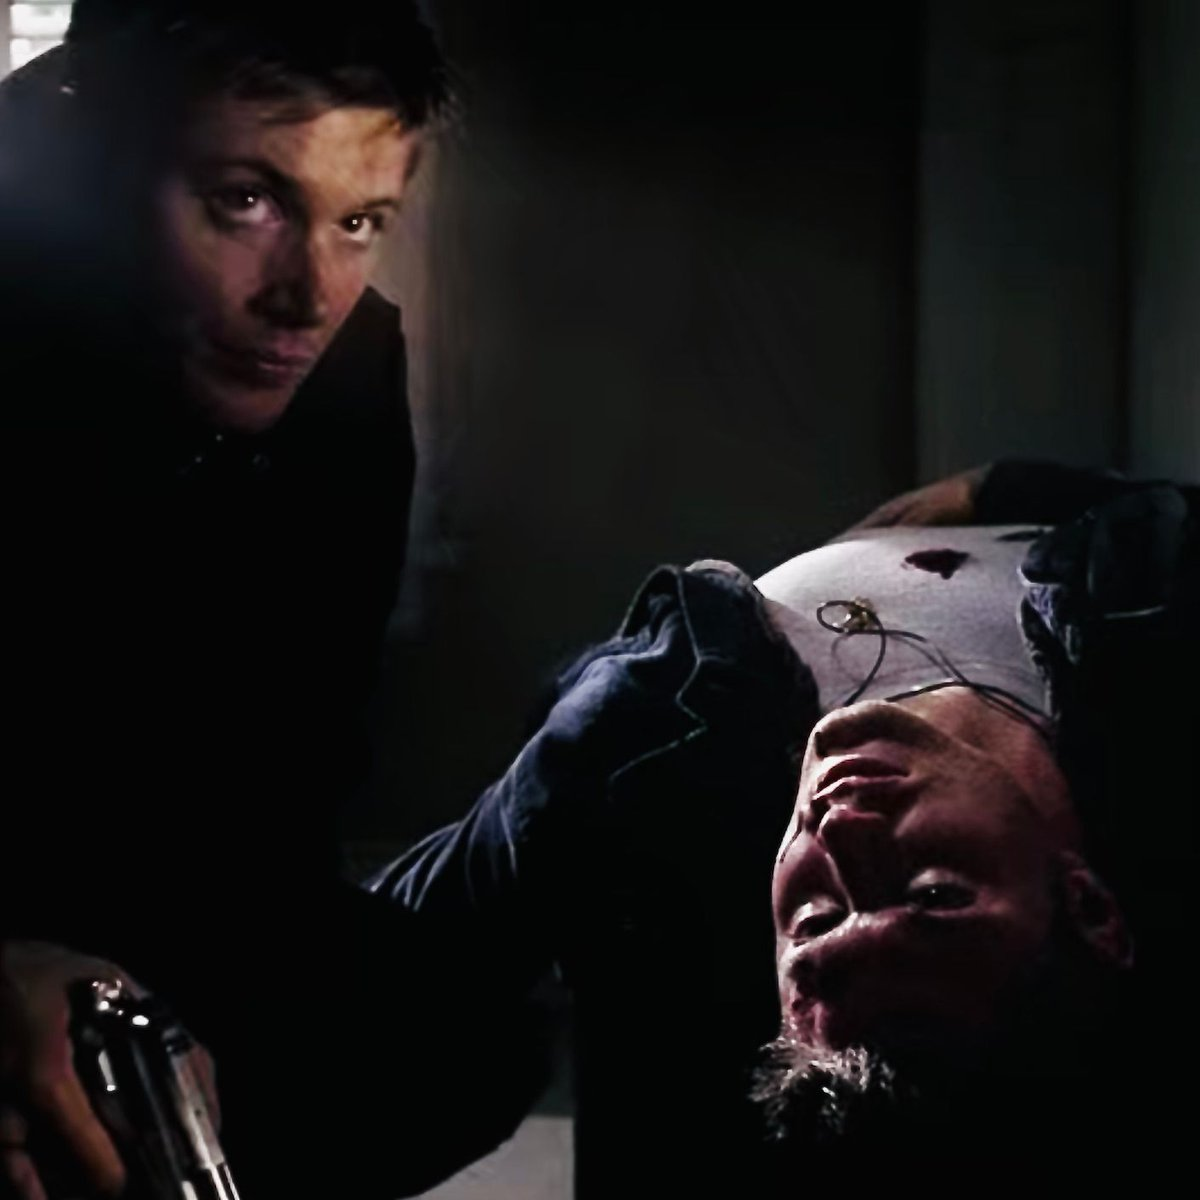 SKIN: Which is the real Dean?  Only the amulet will tell. DO YOU HAVE A DOPPELGANGER?  LISTEN LINK IN THE BIO  #saltandburnthis #supernatural #spn #SPNFamily #samanddean #supernaturalfans #JensenAckles #JaredPadalecki